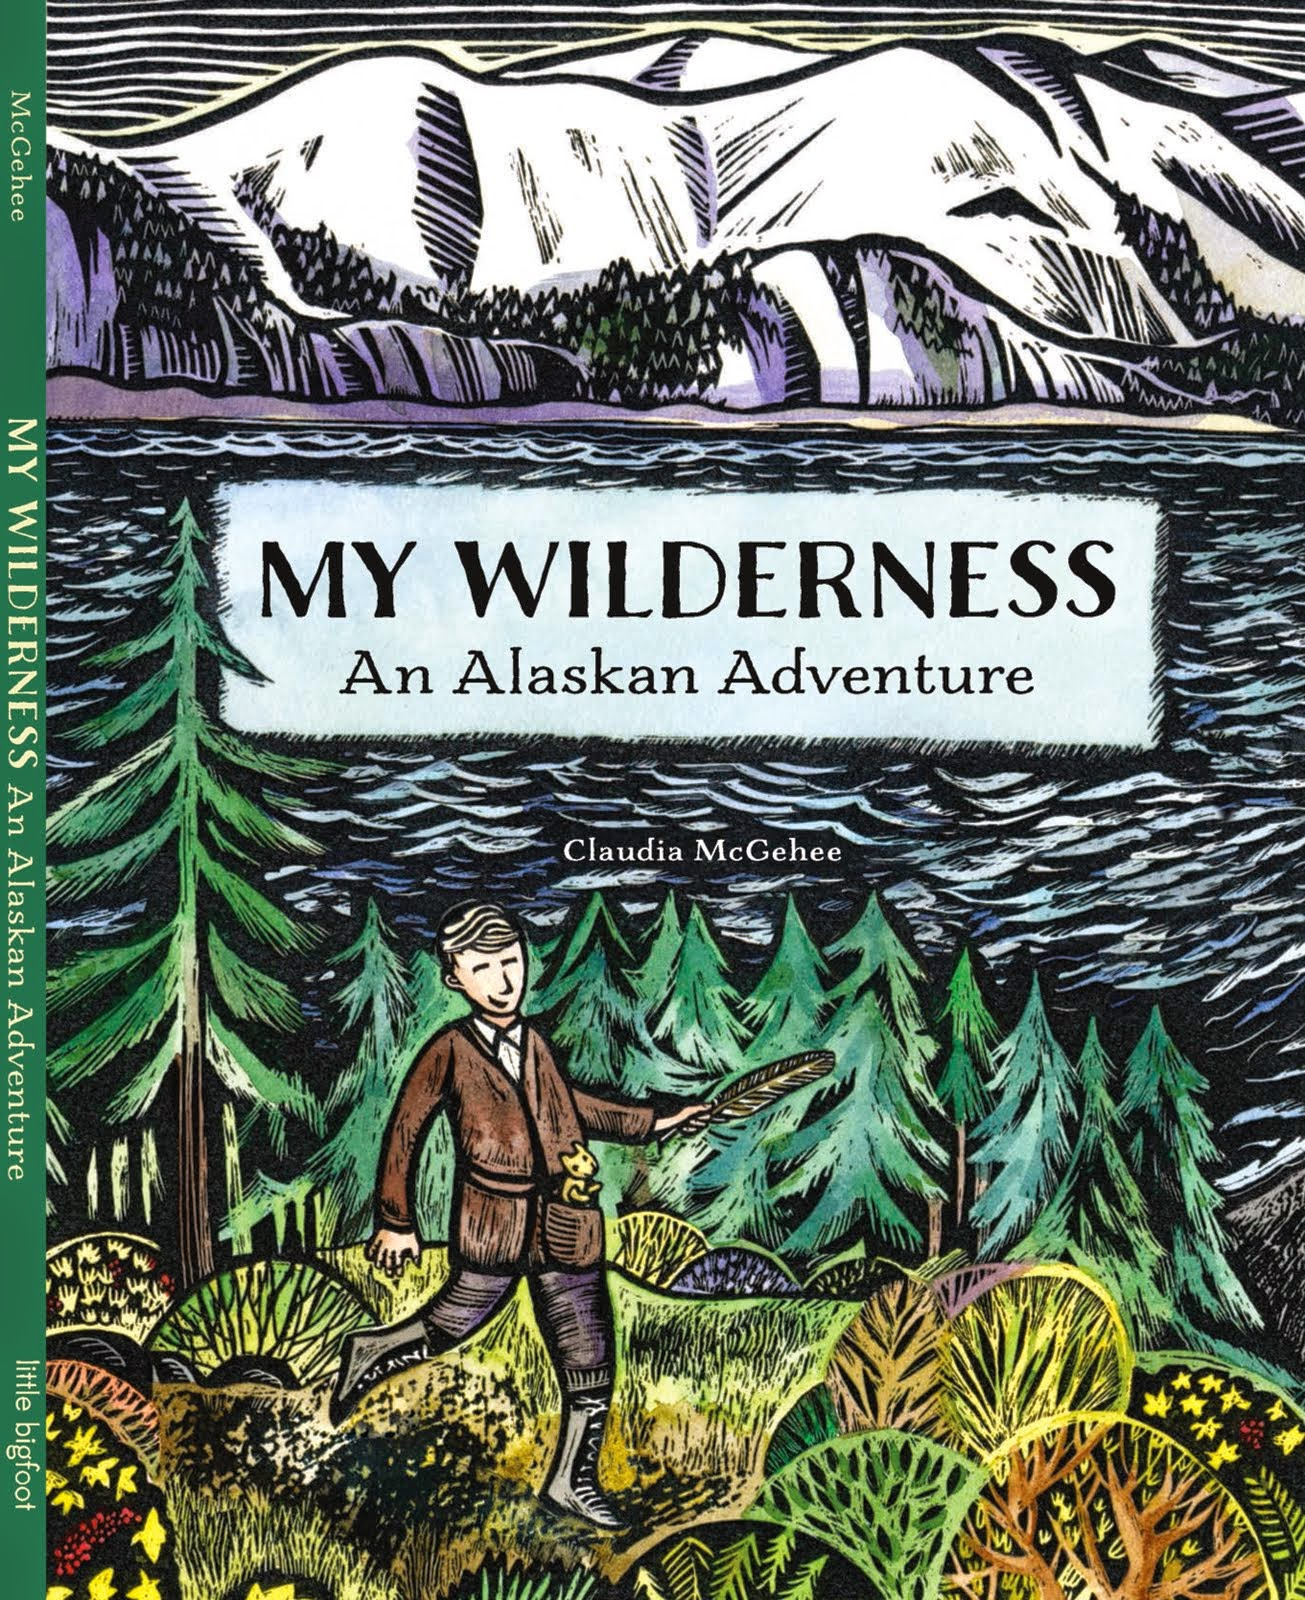 My Wilderness: An Alaskan Adventure